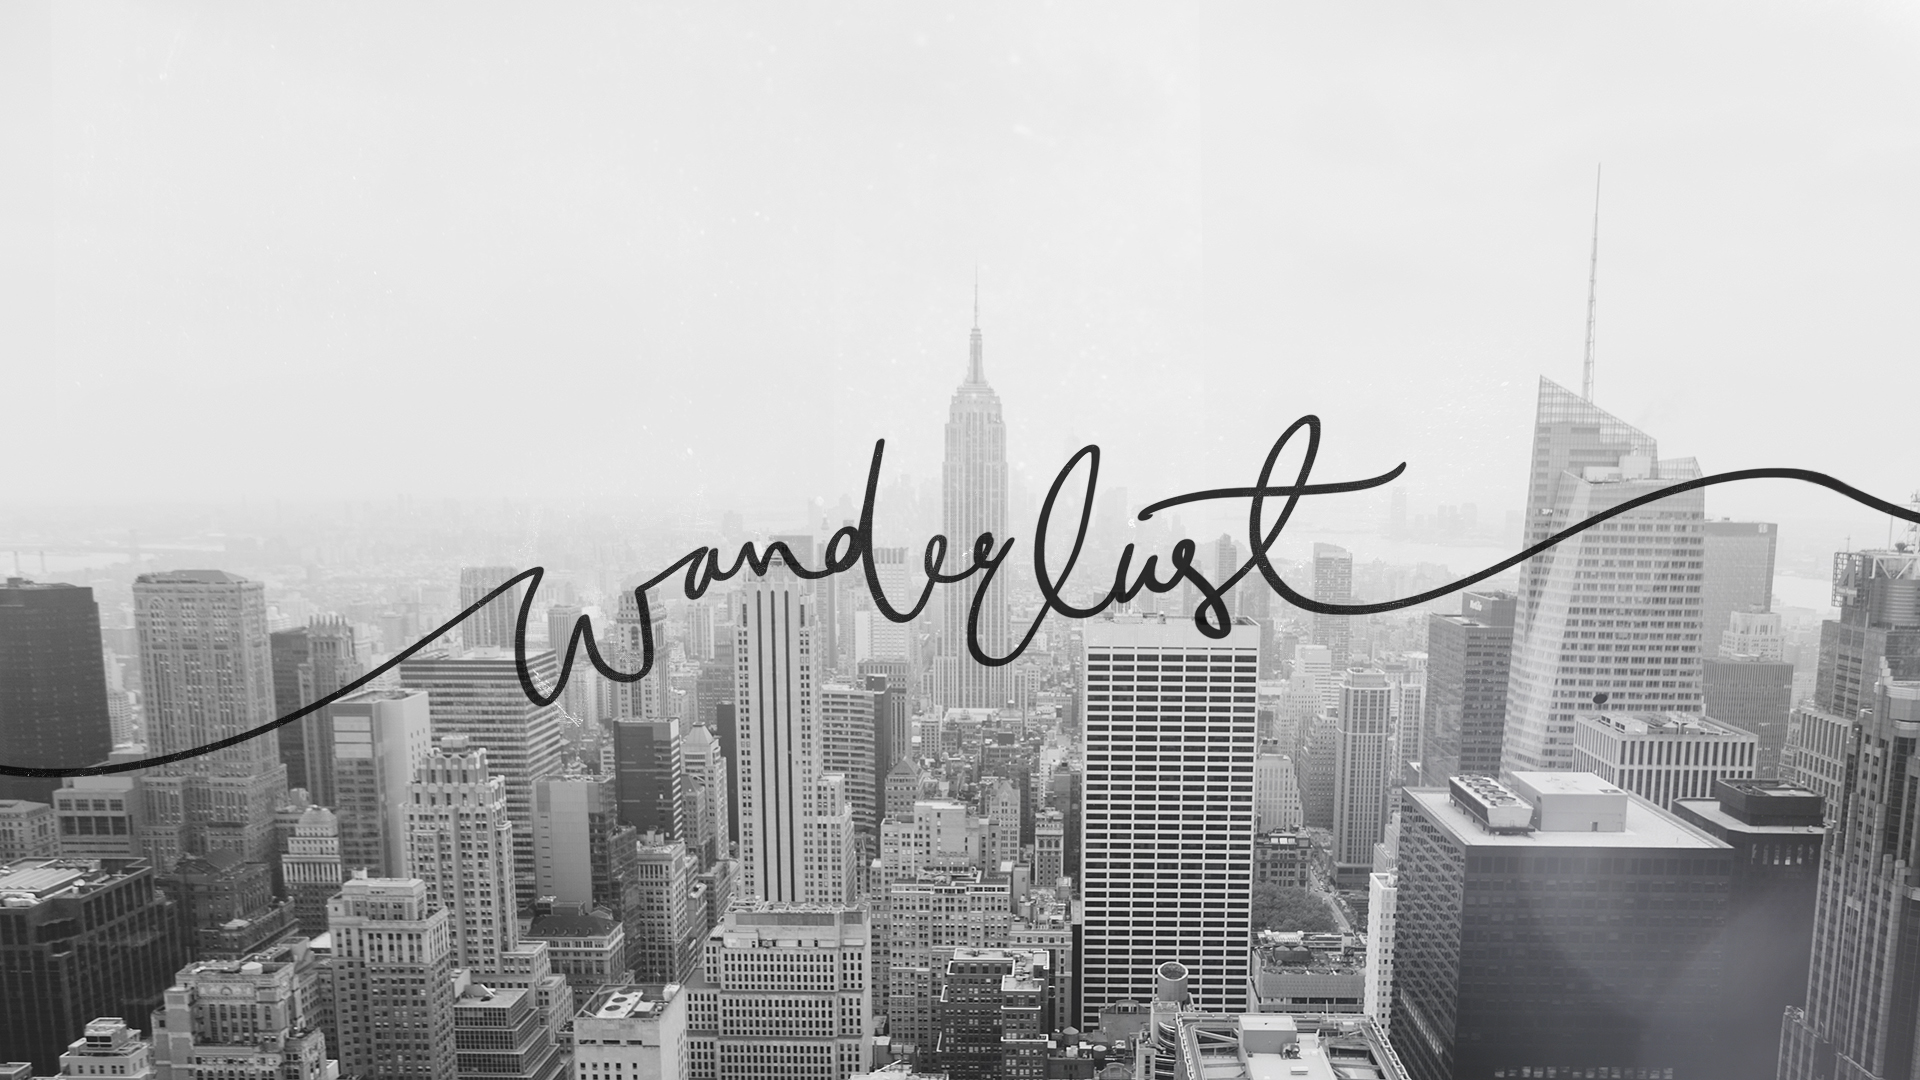 Vintage Wallpaper Quotes 82 Travel Tumblr Backgrounds Balloon Wallpaper Phone